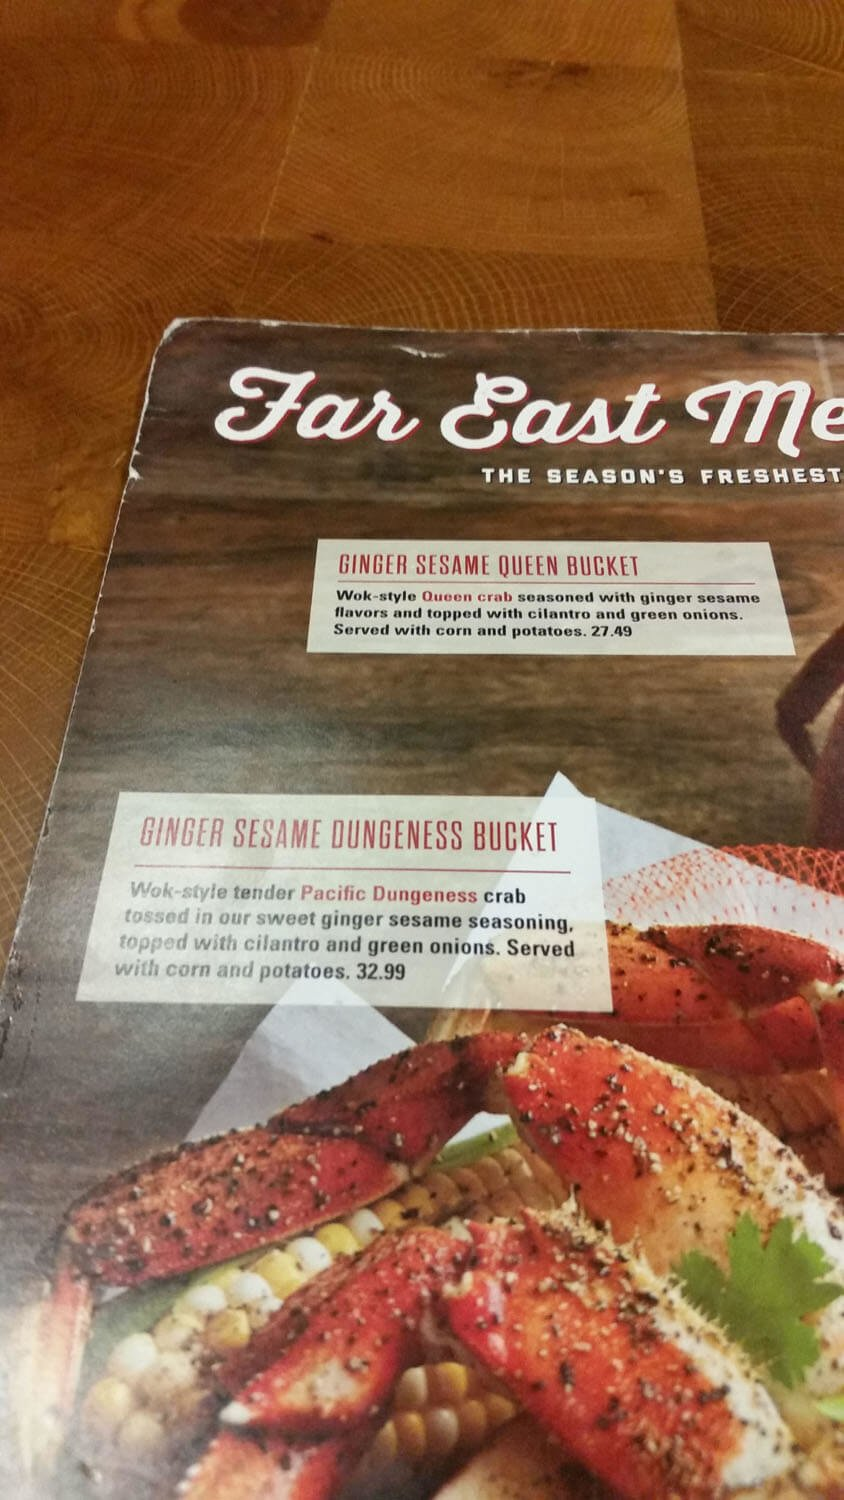 Joe's Crab Shack Menu – 26